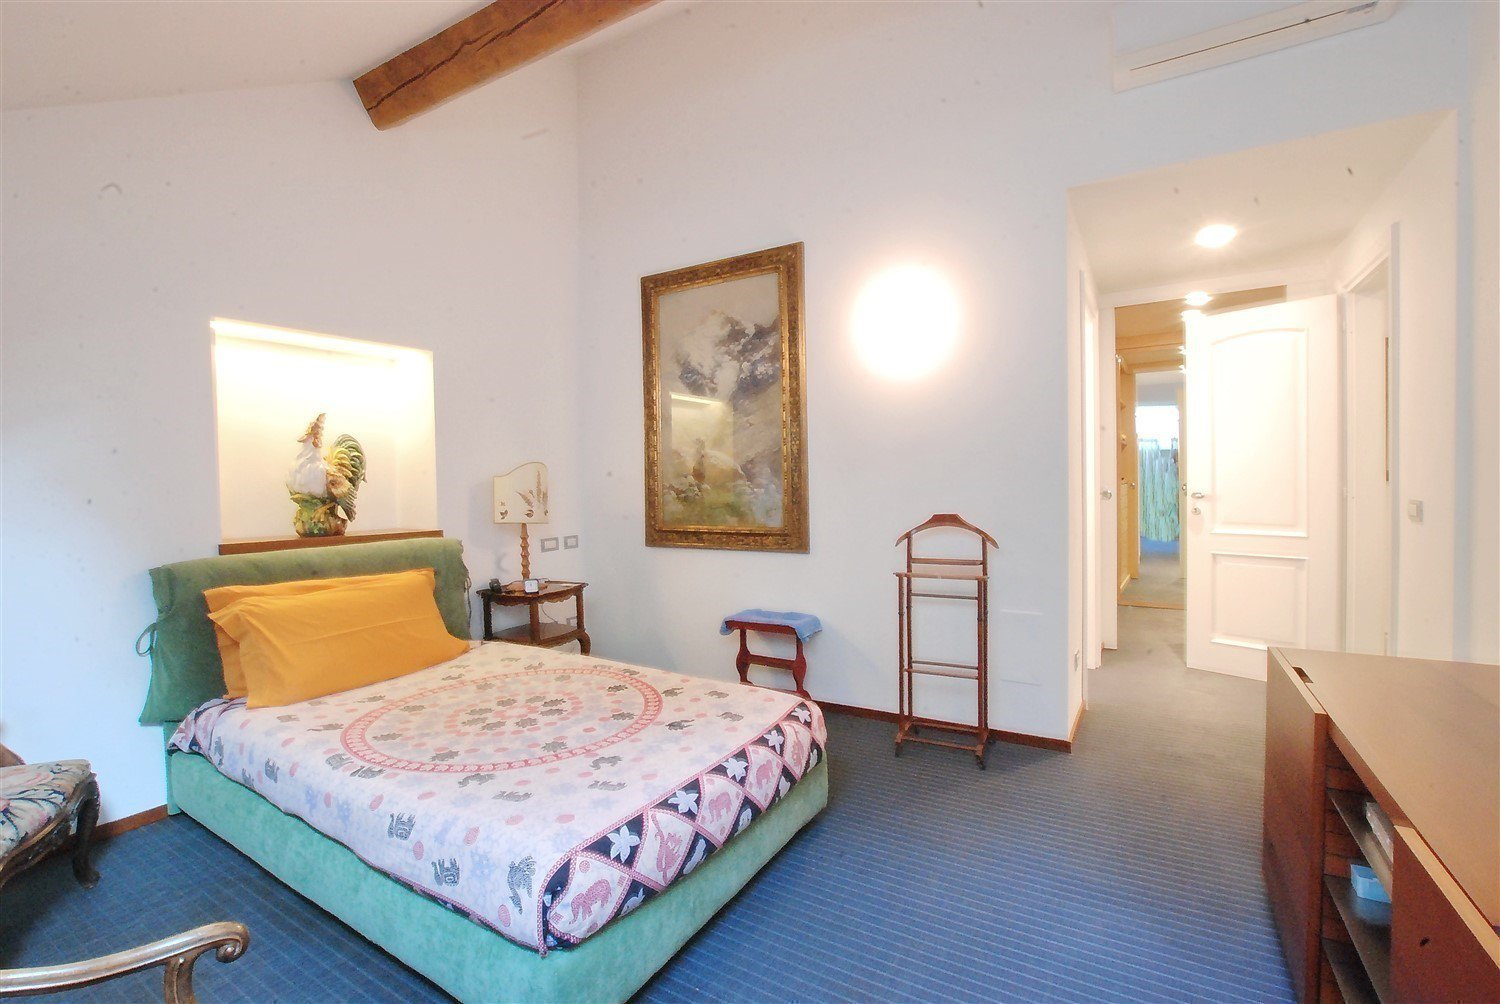 Apartment for sale in Baveno, inside a historic lake front villa - double bedroom